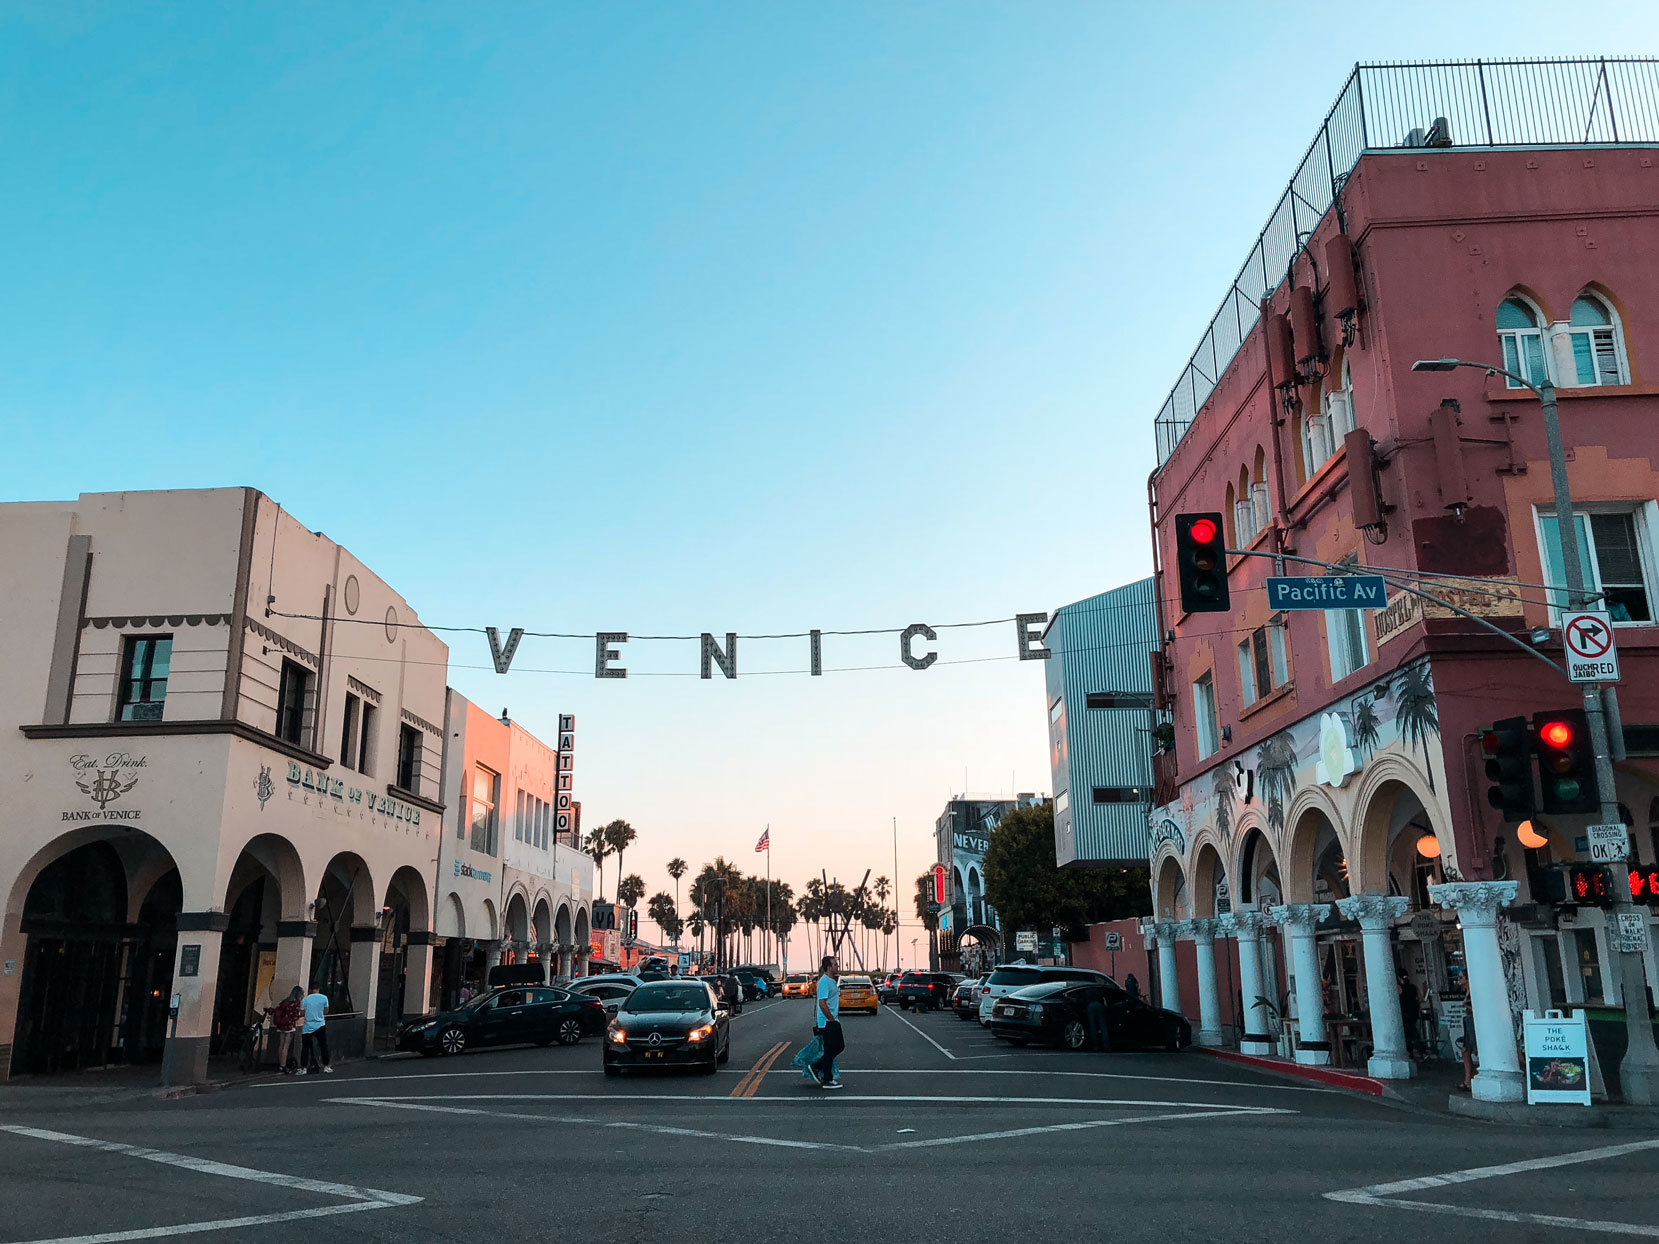 """City with palm trees in the distance and sign that says """"Venice"""" handing in between buildings in the foreground"""